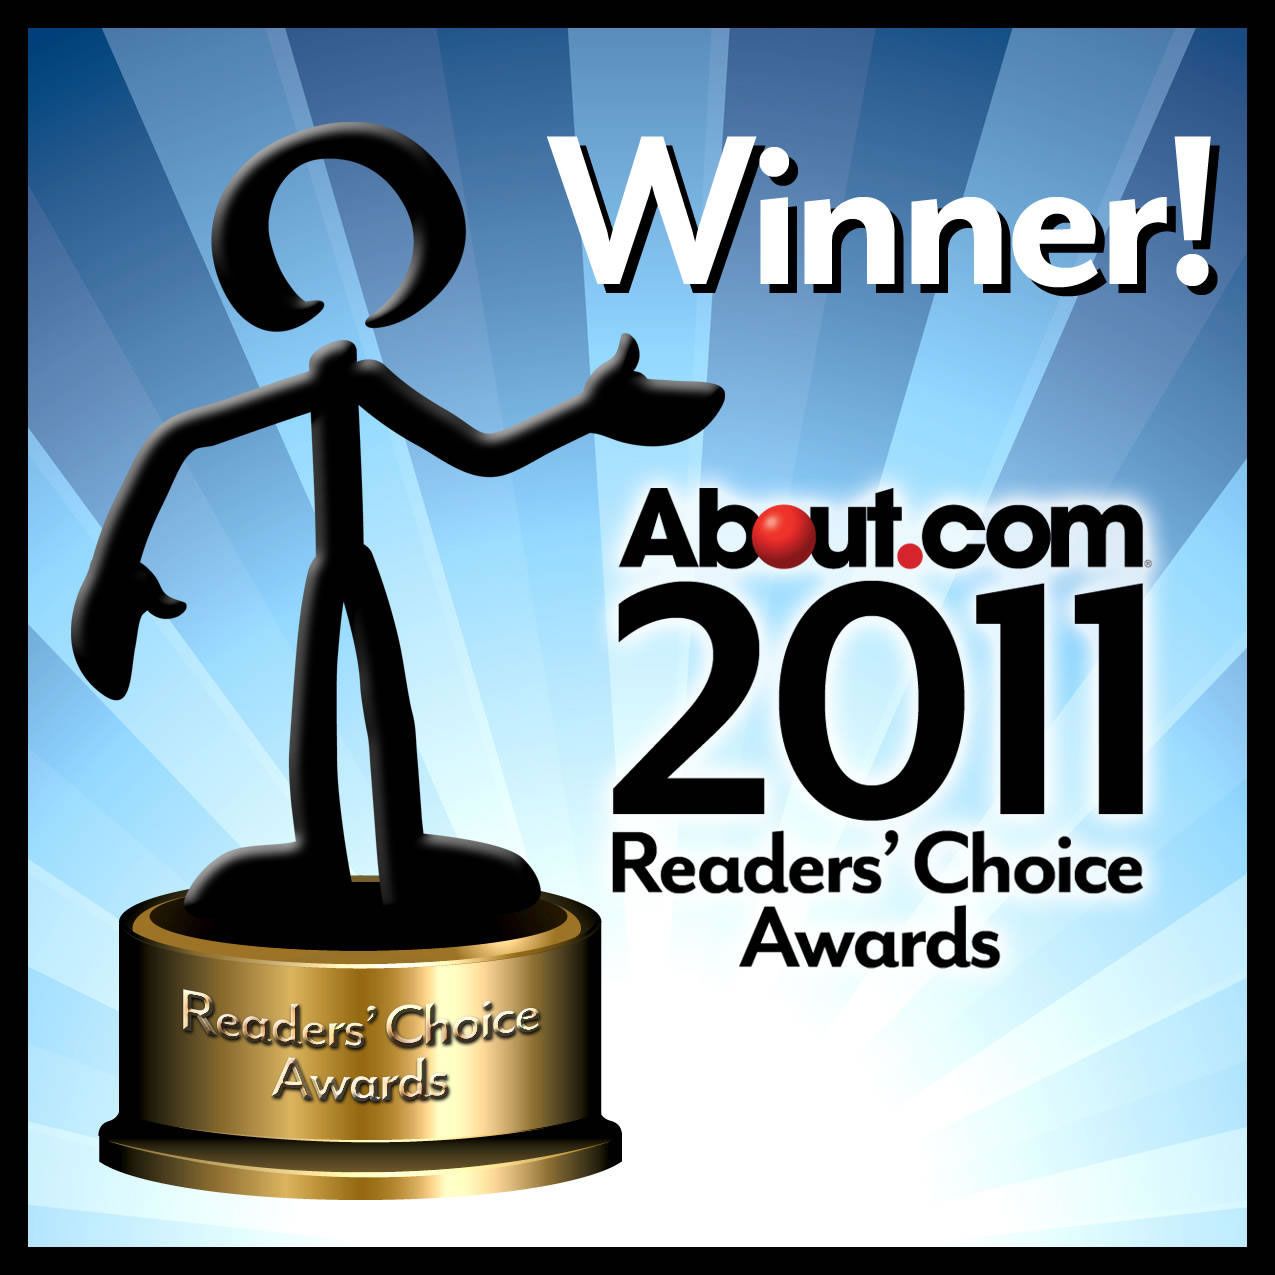 About.com readers choice award